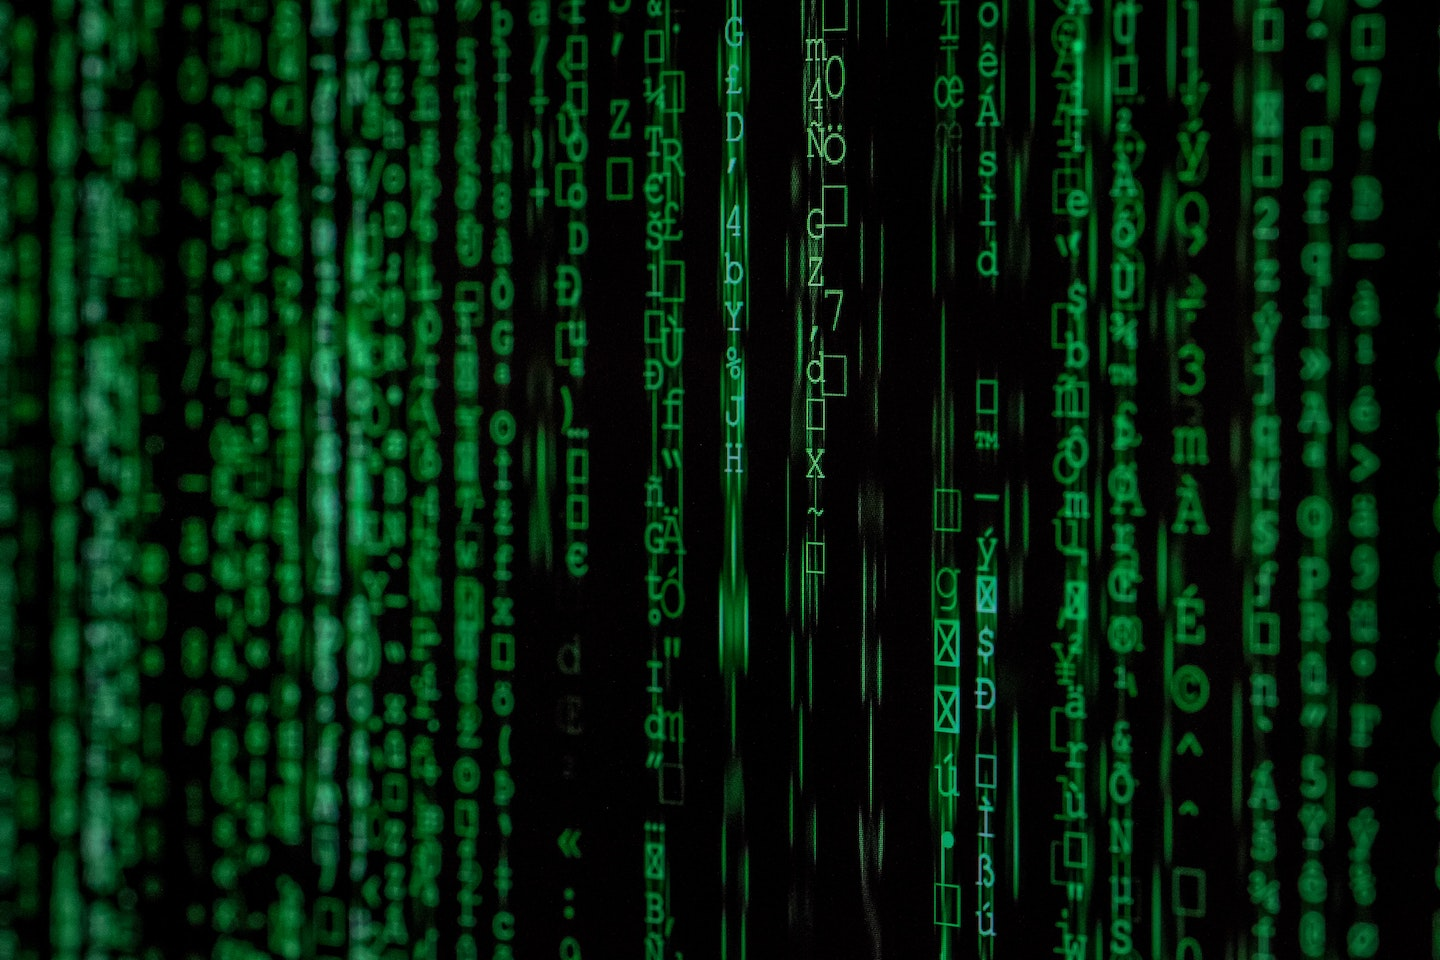 An image of codes in green across a screen